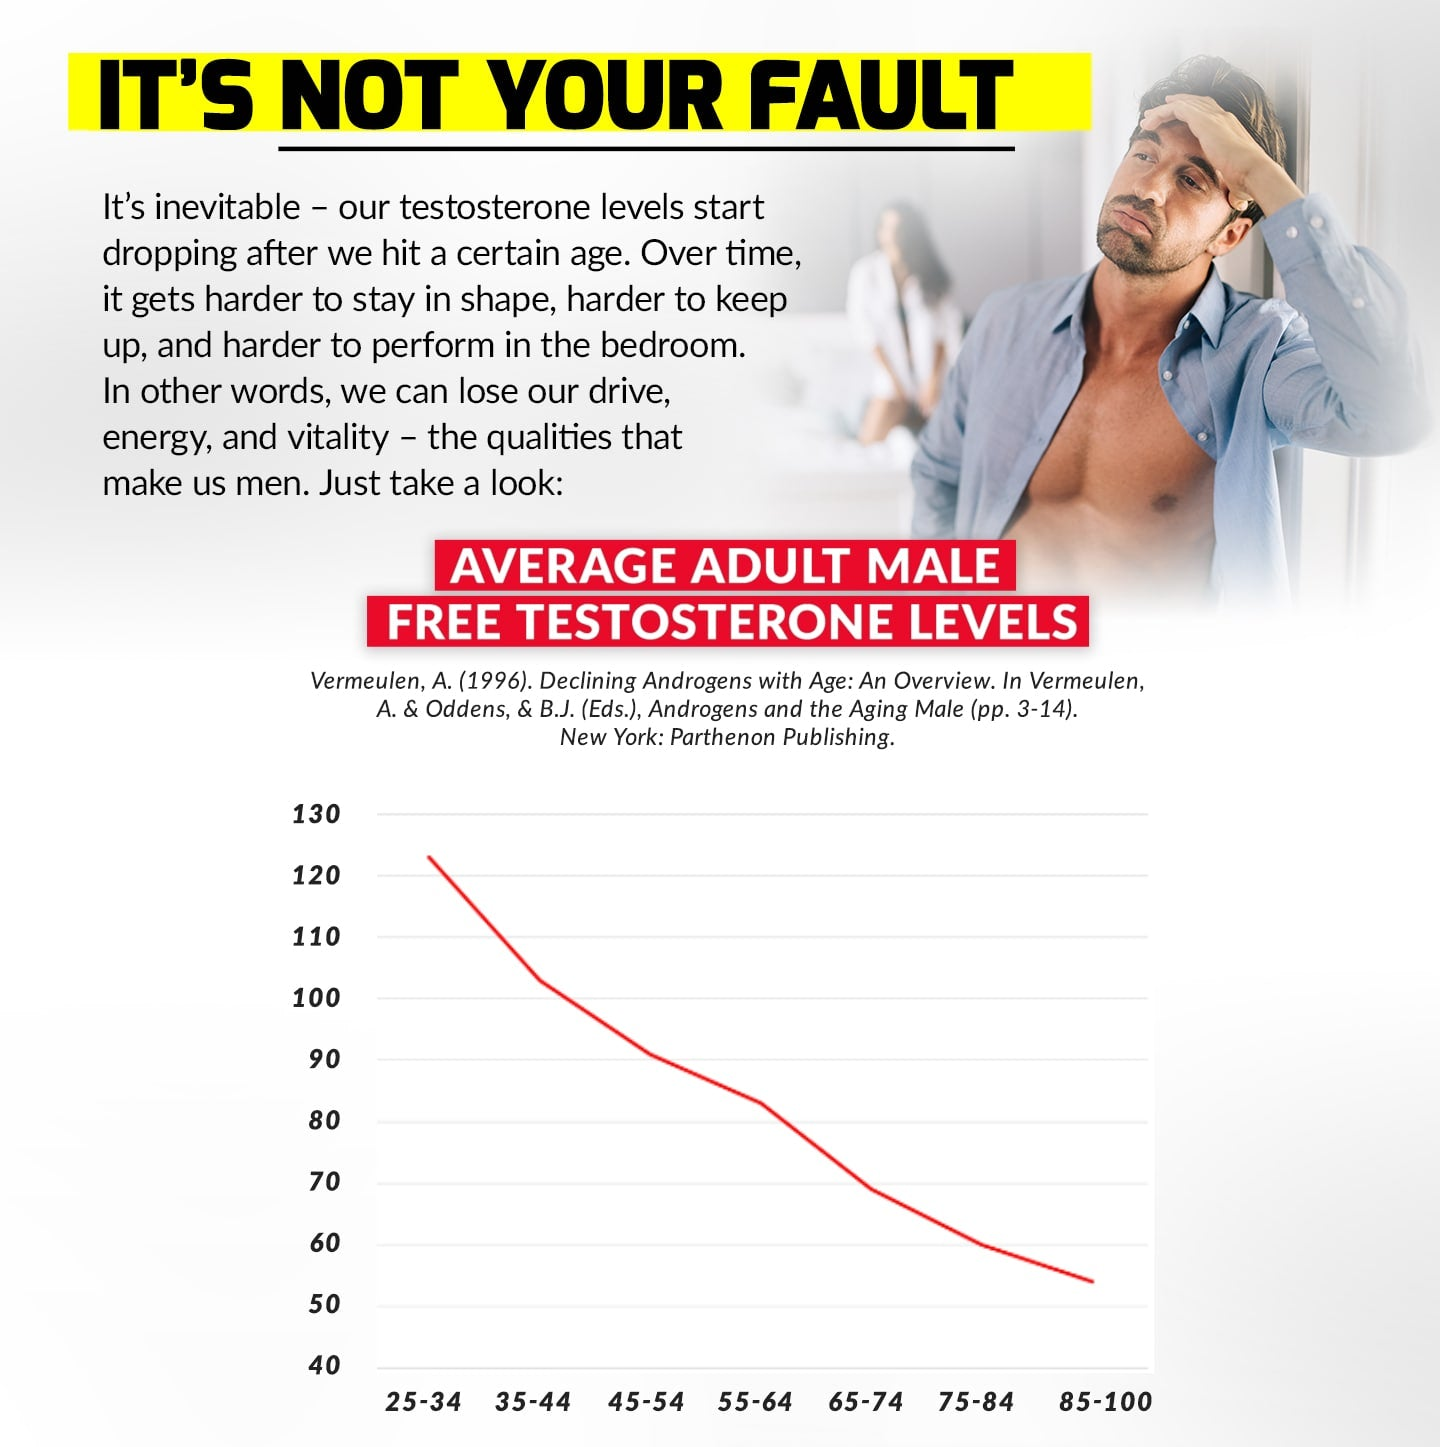 IT'S NOT YOUR FAULT. It's inevitable – our testosterone levels start dropping after we hit a certain age. Over time, it gets harder to stay in shape, harder to keep up, and harder to perform in the bedroom. In other words, we can lose our drive, energy, and vitality – the qualities that make us men. Just take a look: